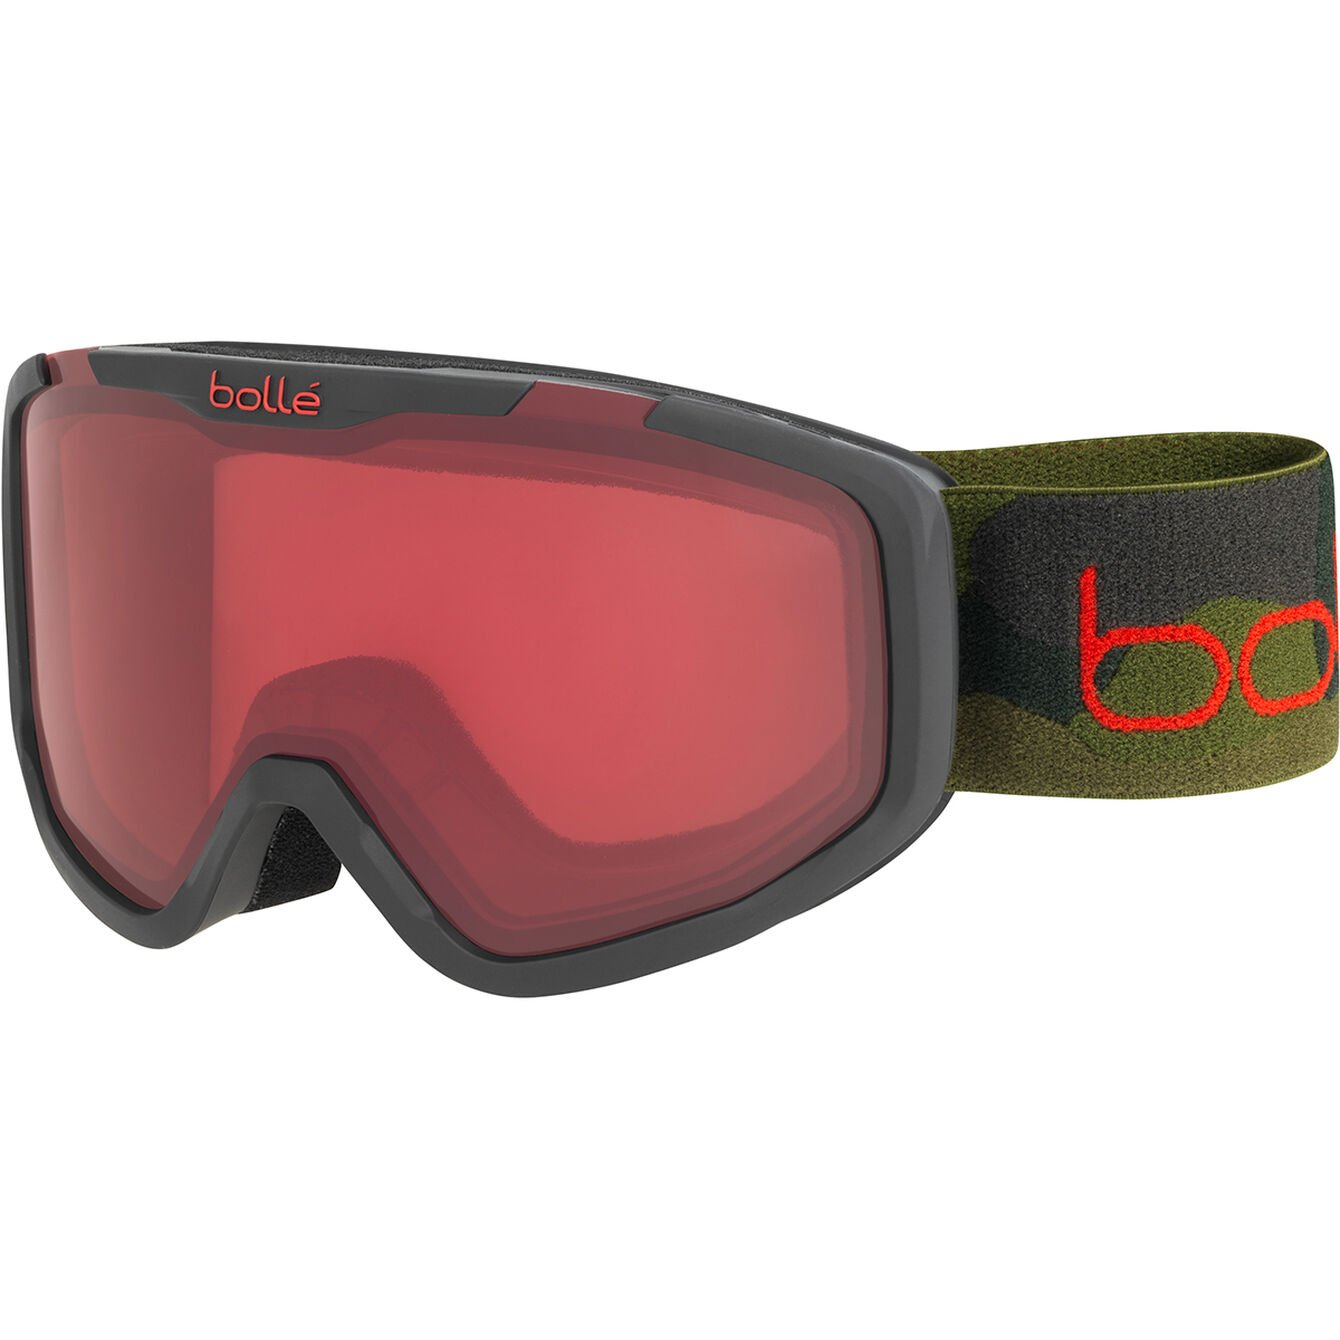 Bolle Rocket Goggles 2021